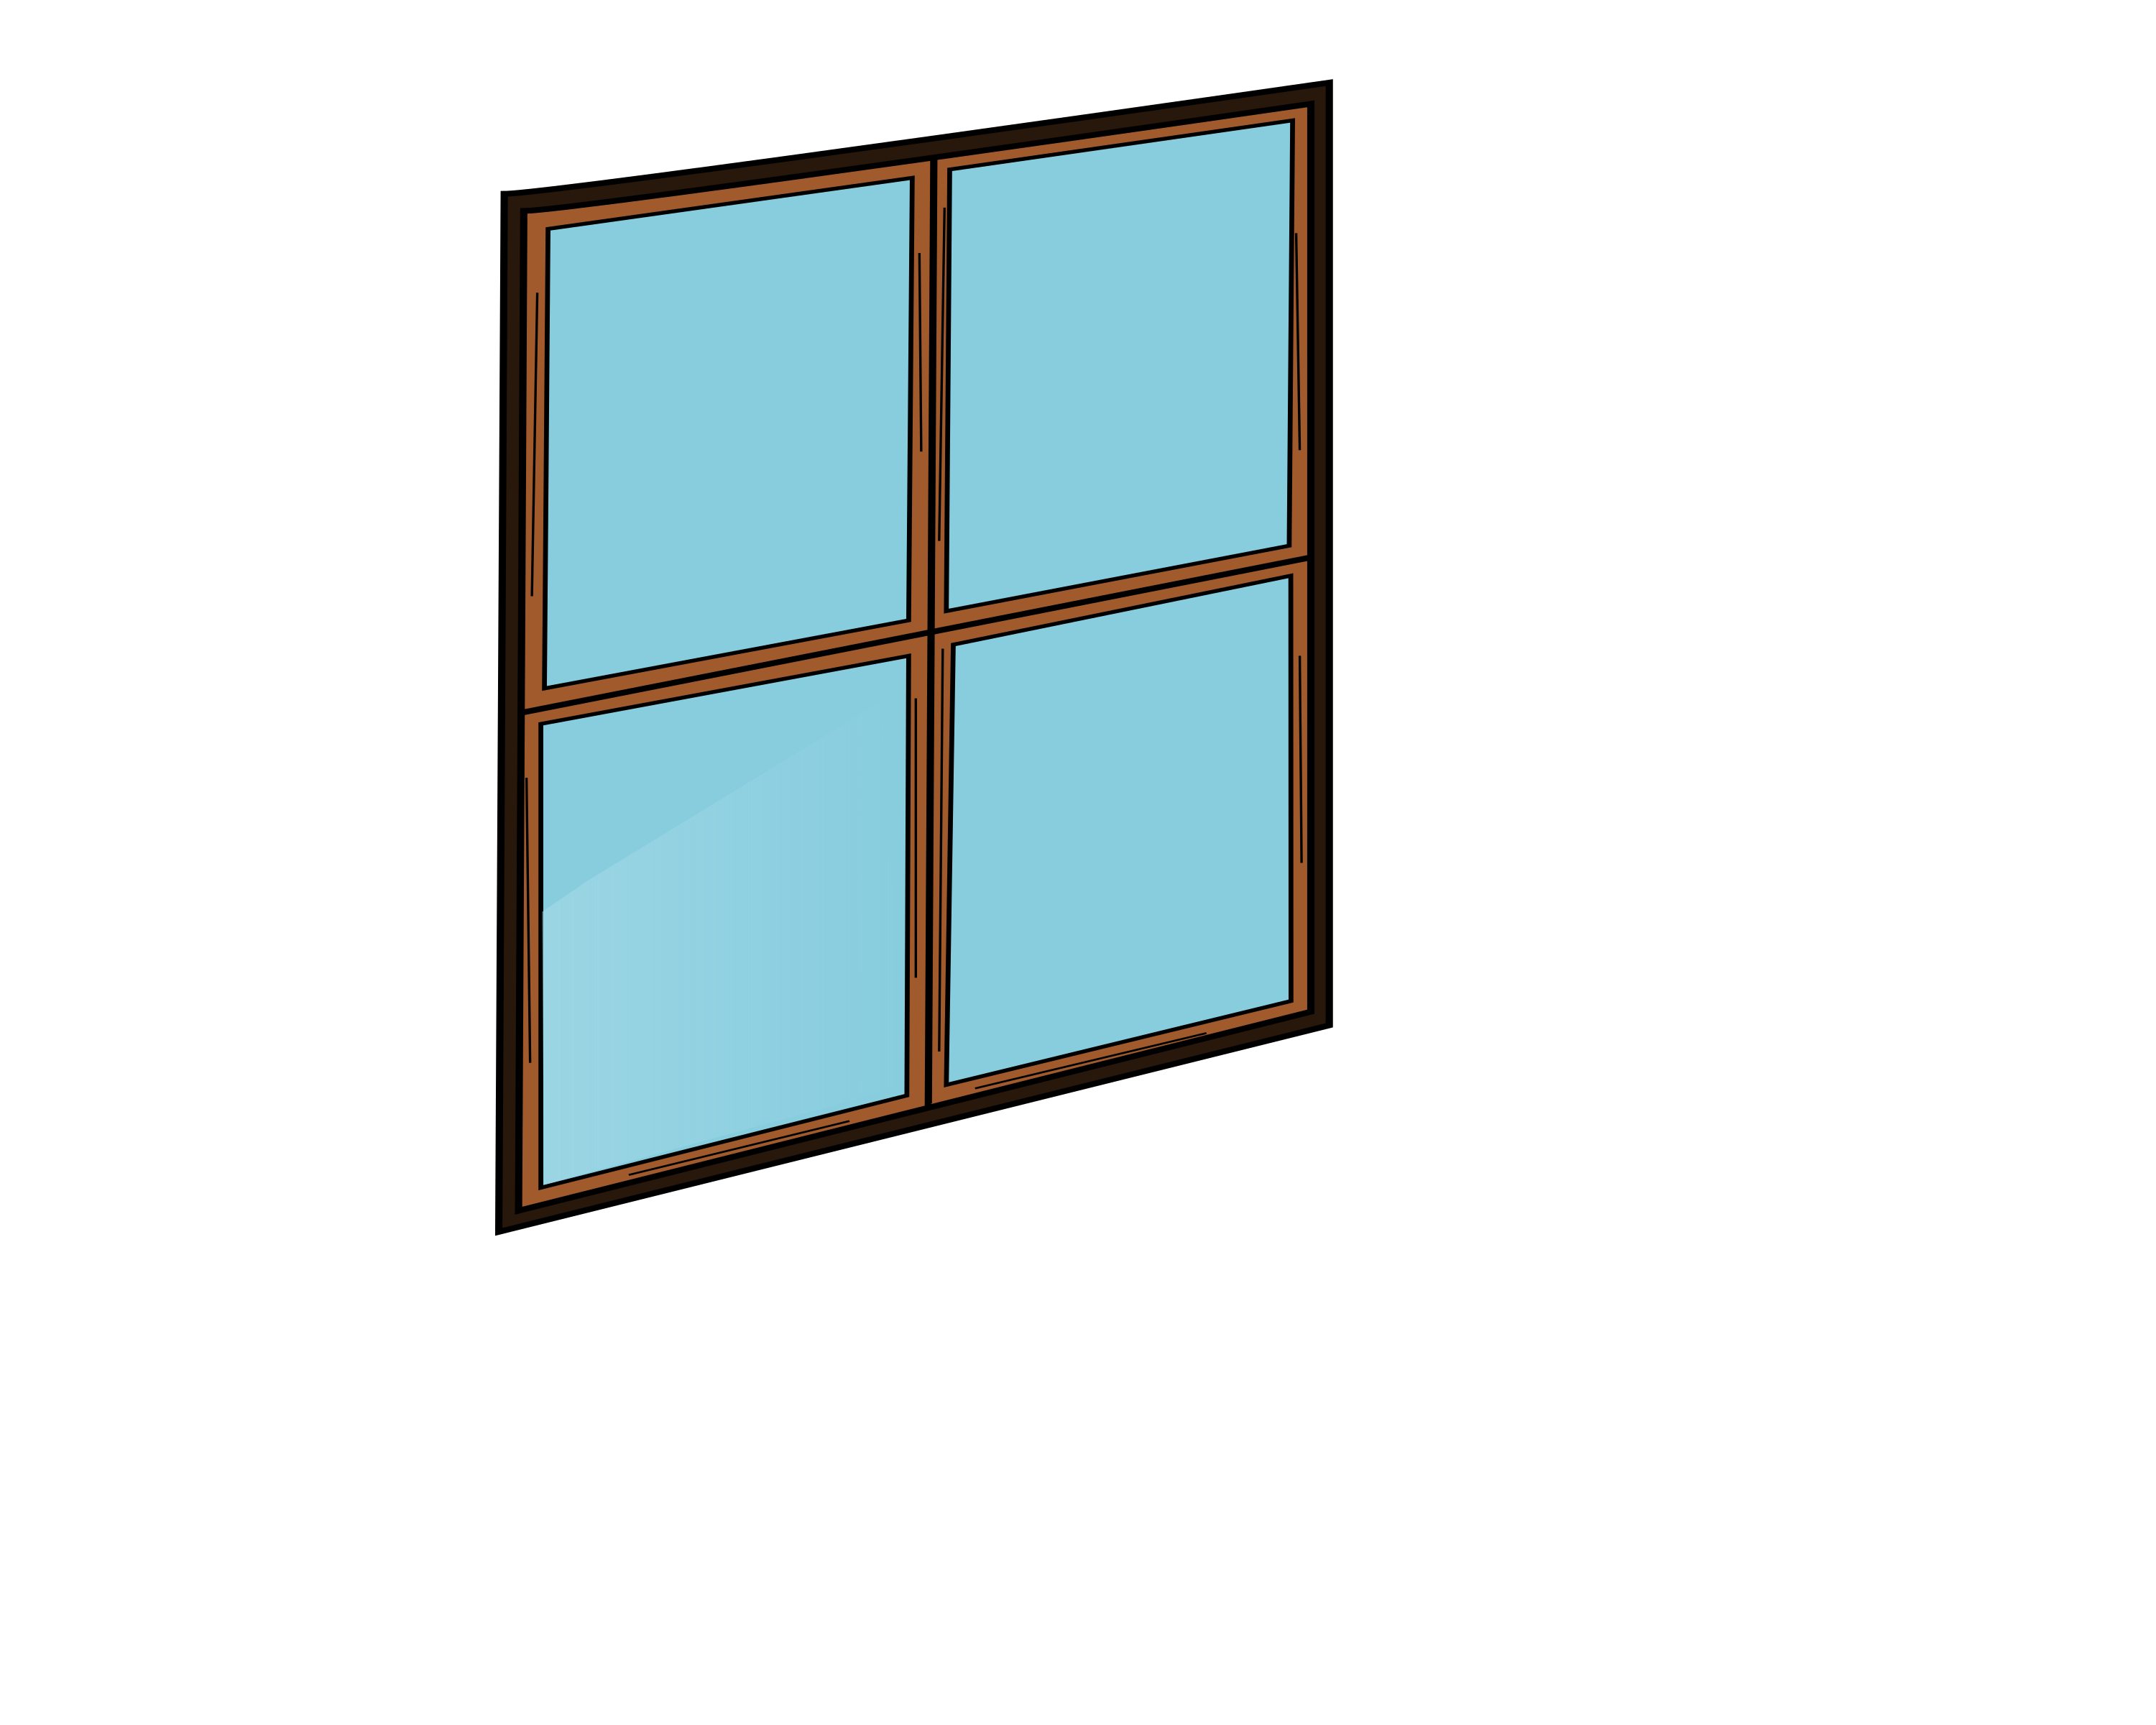 Window by ali2013